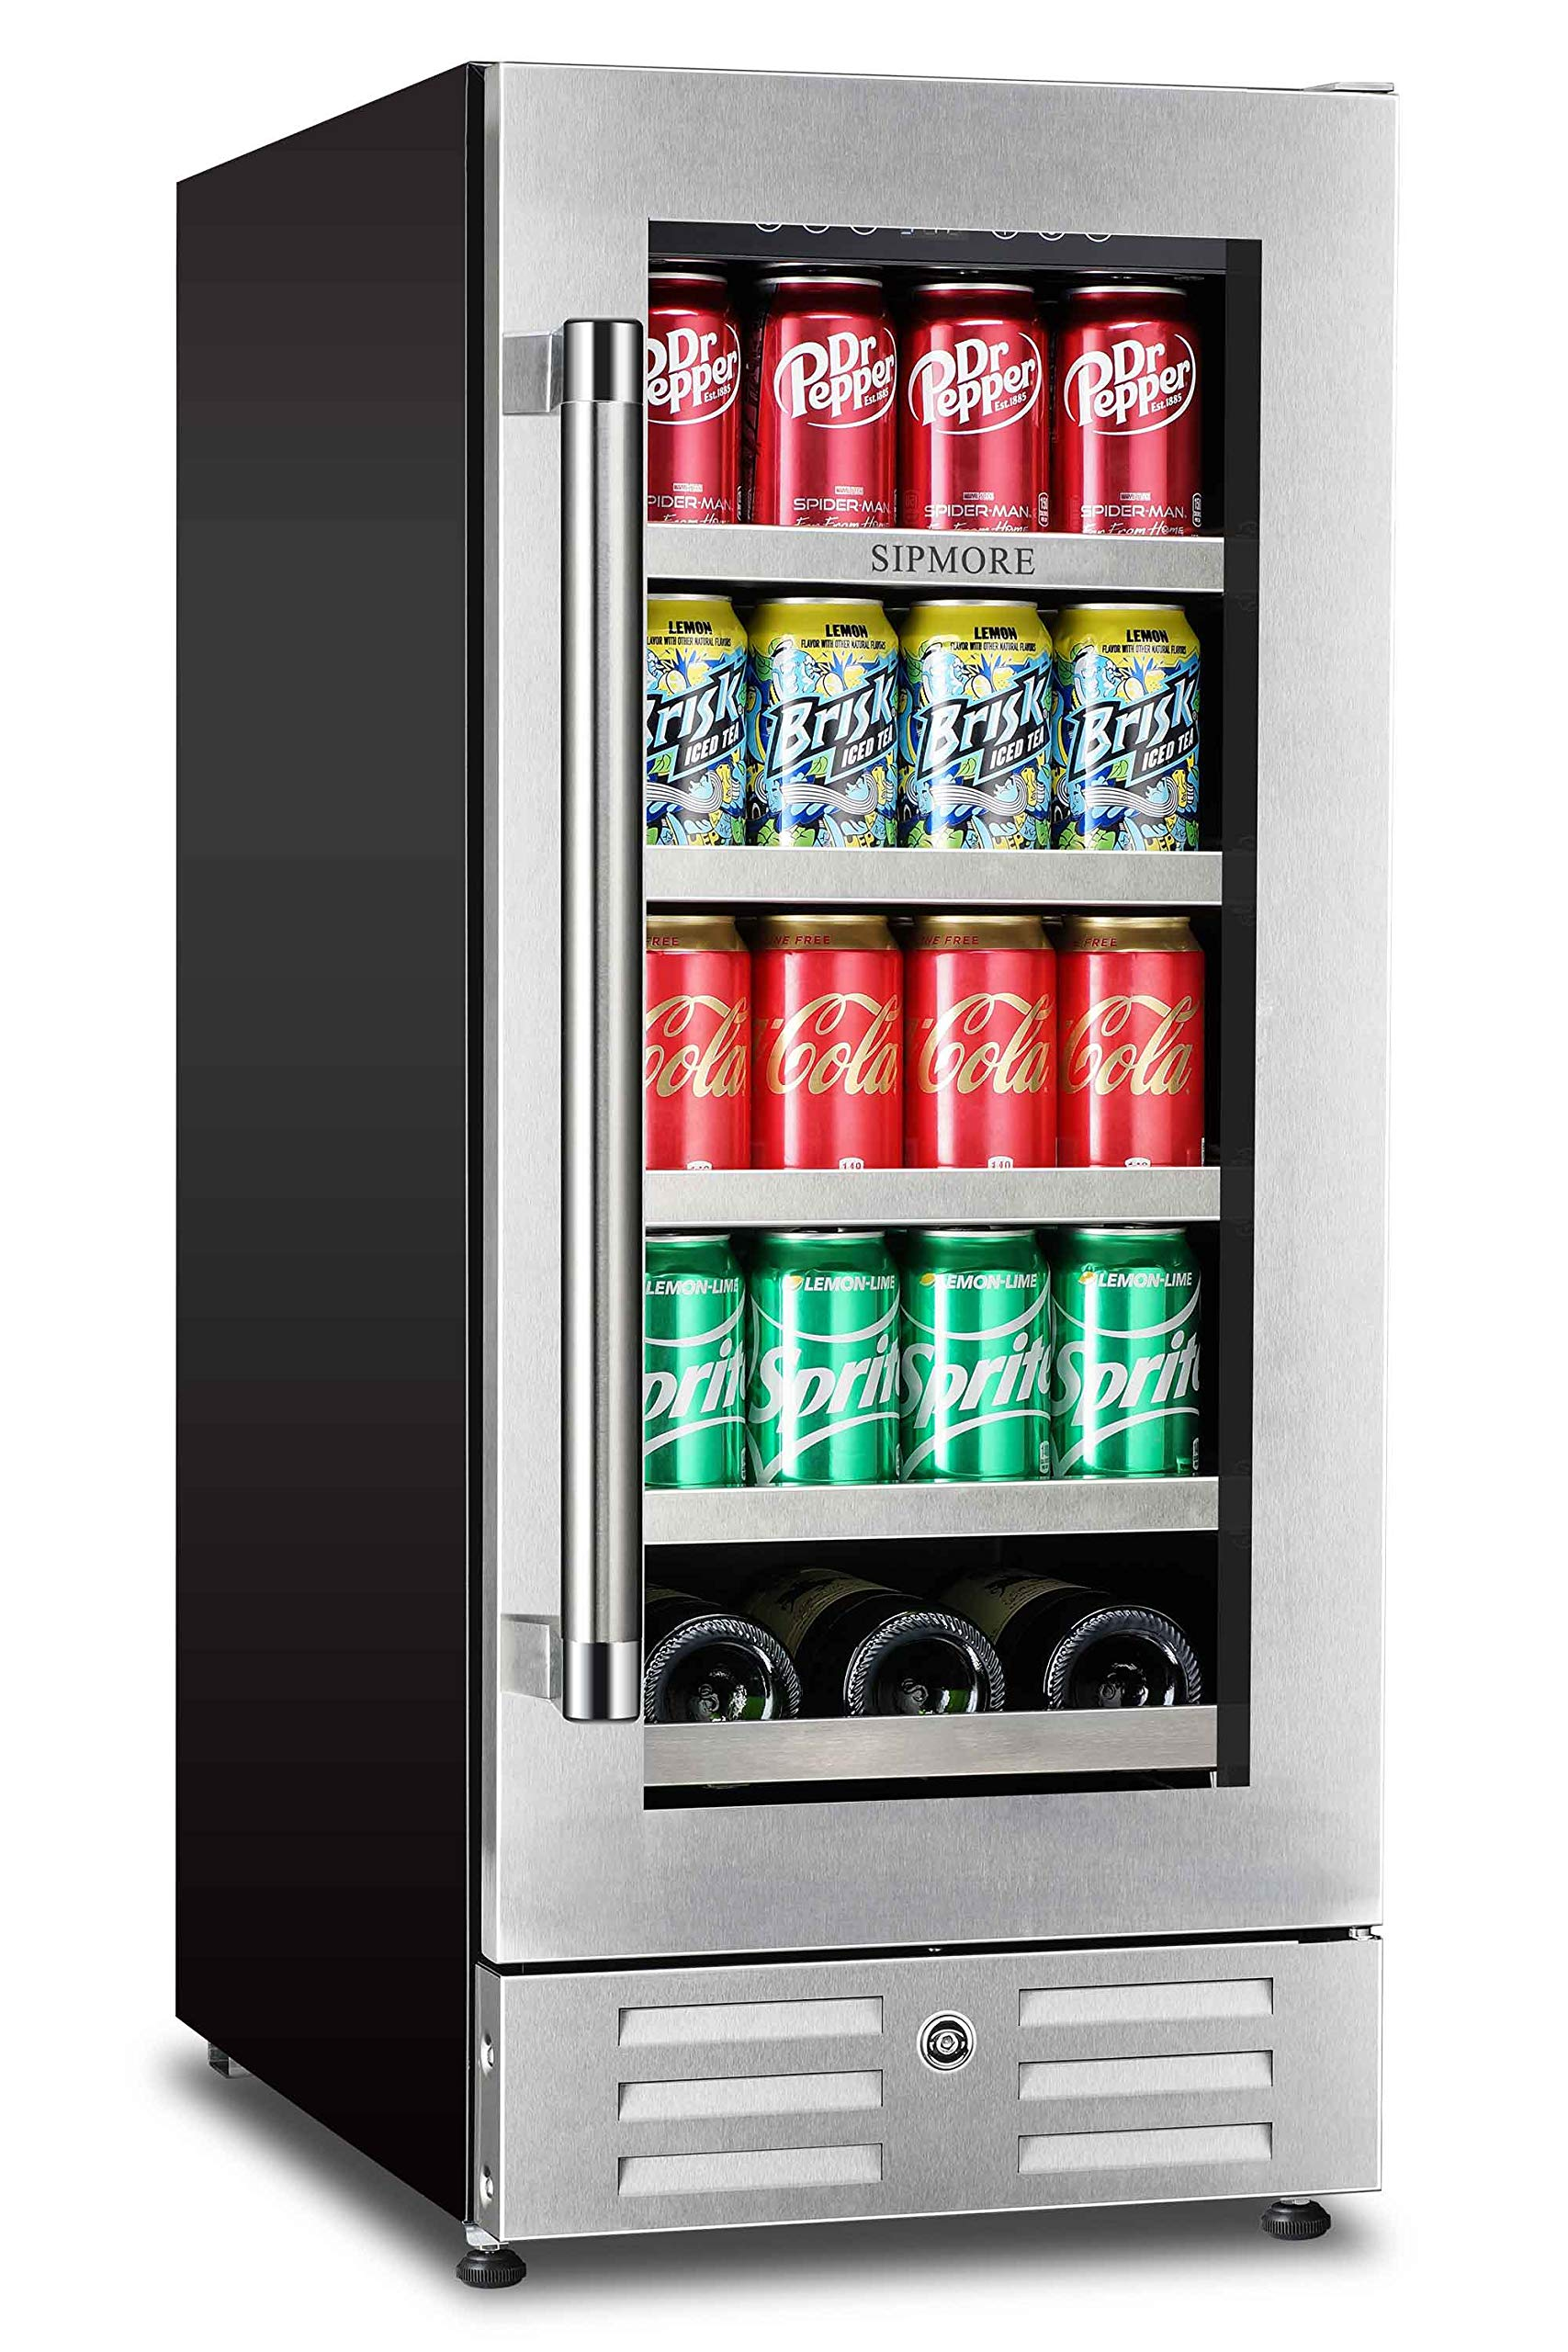 Sipmore Beverage Refrigerator and Wine Cooler 15 inch Stainless Steel Shelf 88 Can and 3 Bottle Built-in for Soda Beer, Powerful Drink Machine with Smart Control System by SIPMORE